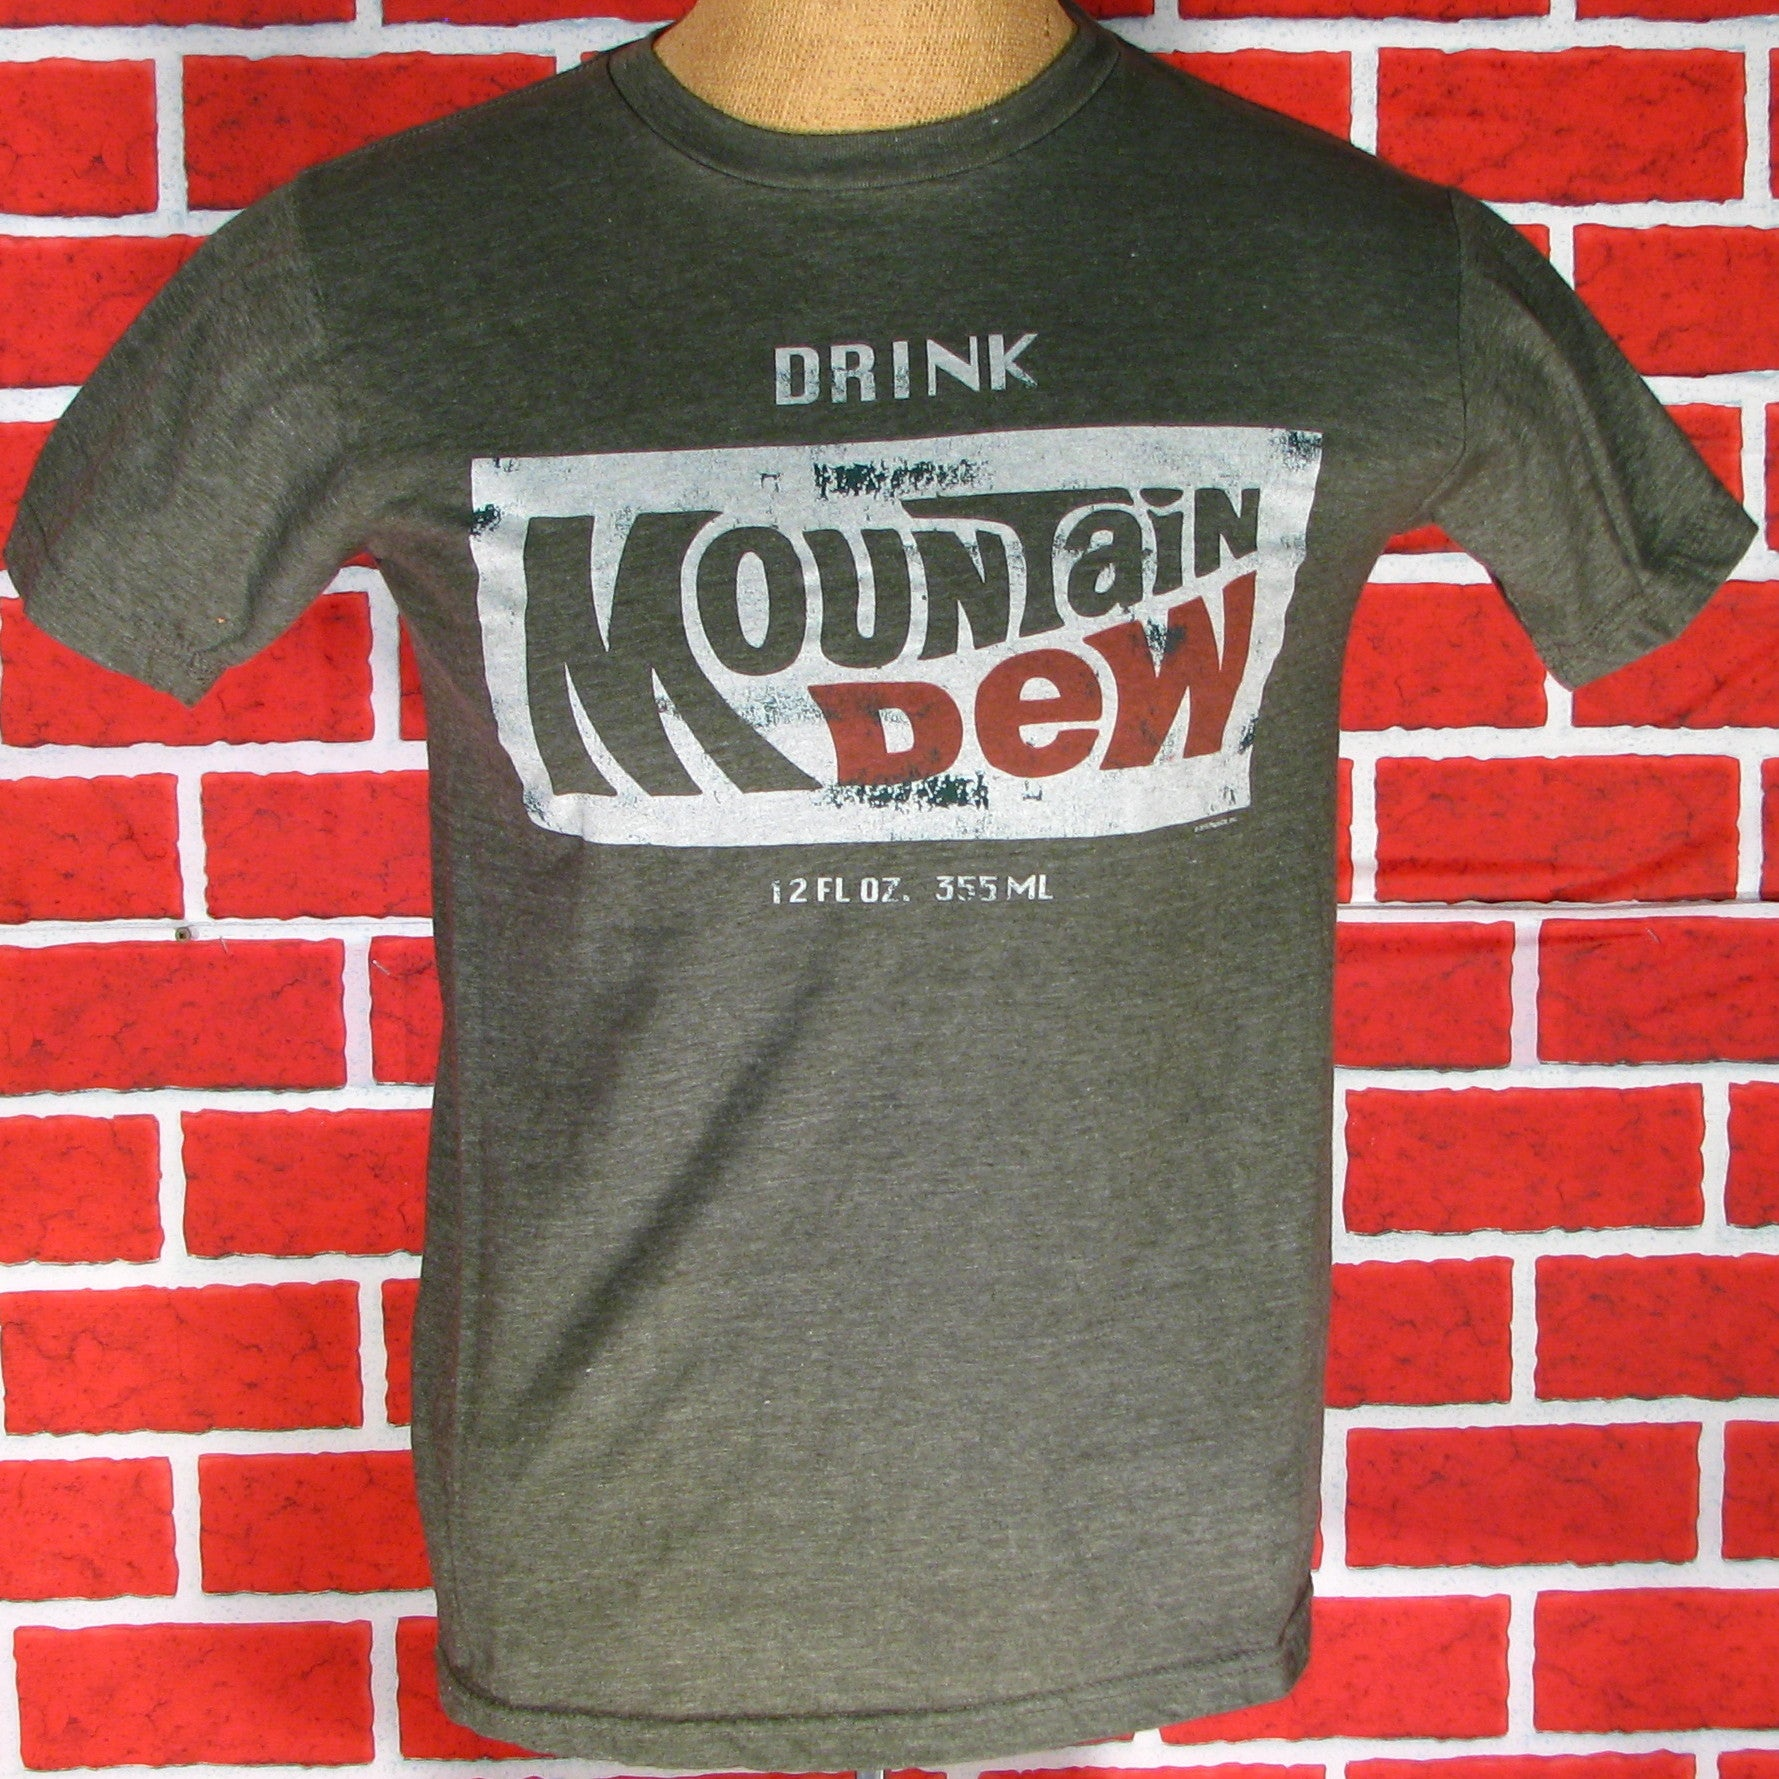 Drink Mountain Dew T-Shirt